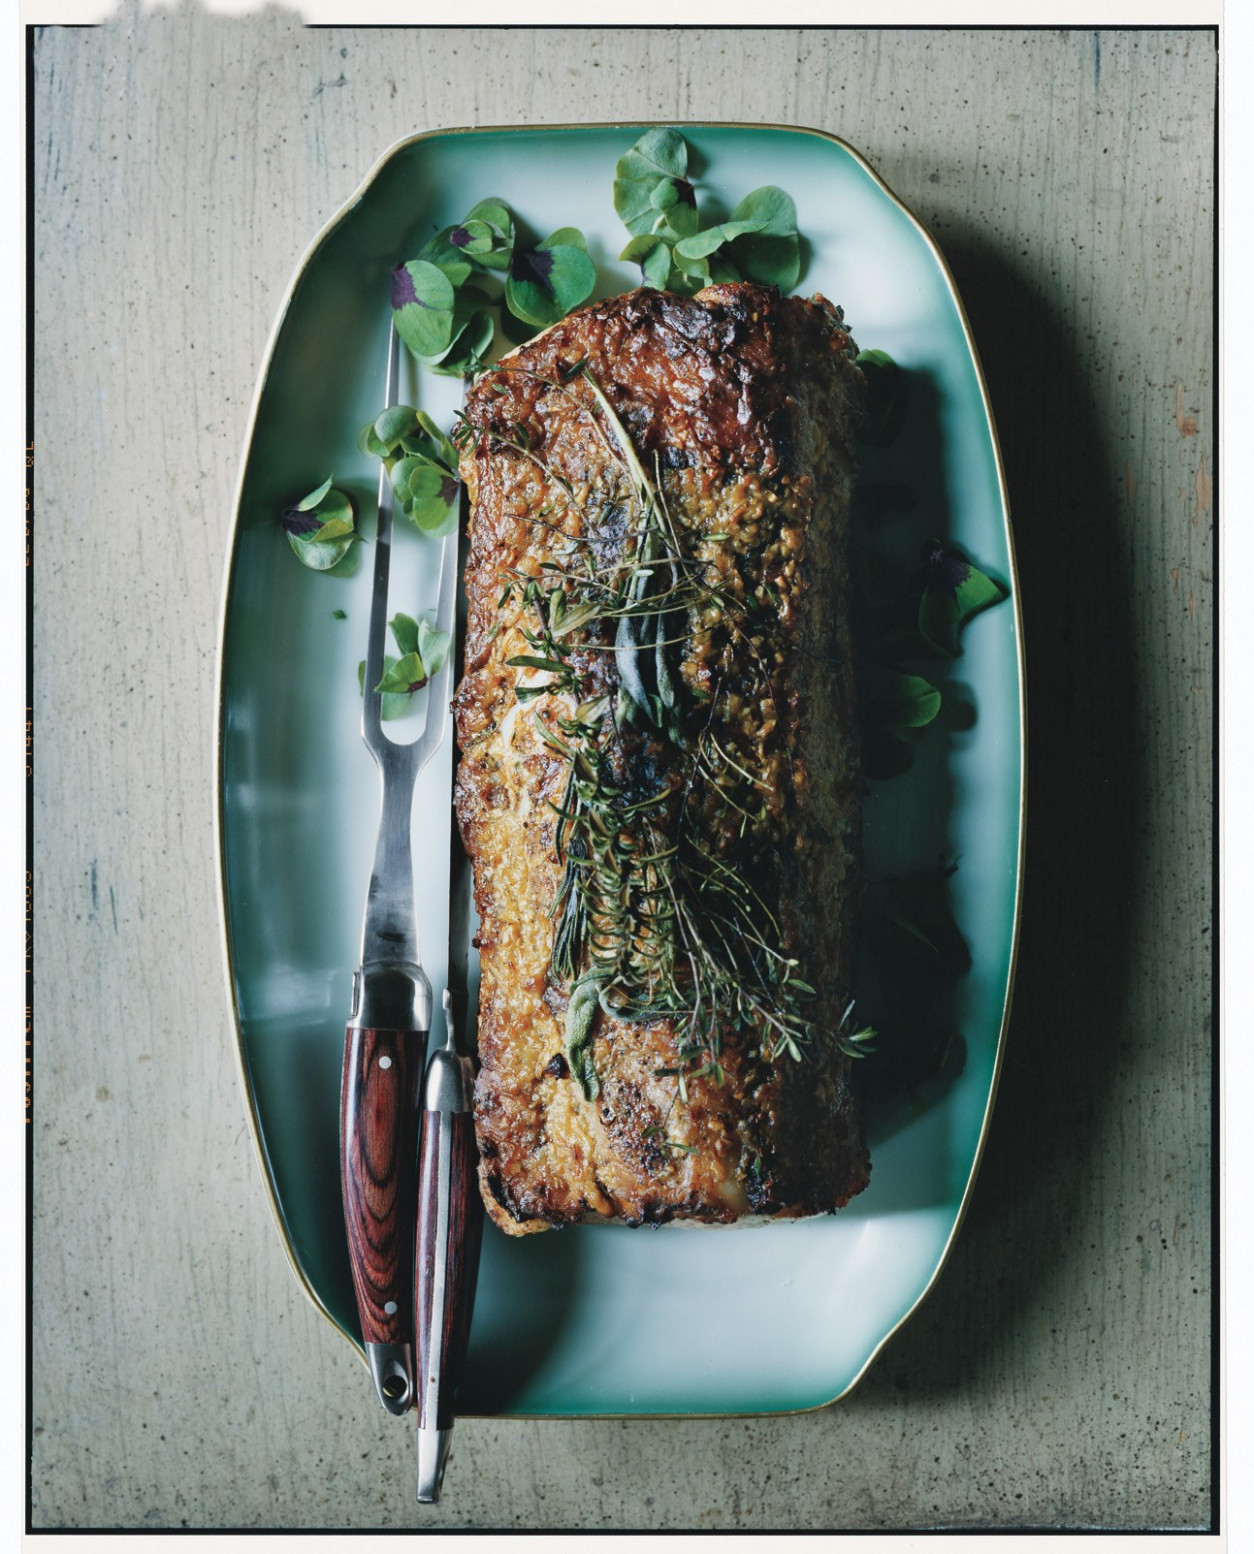 Roast Pork Loin With Garlic And Rosemary - Healthy Recipes Epicurious